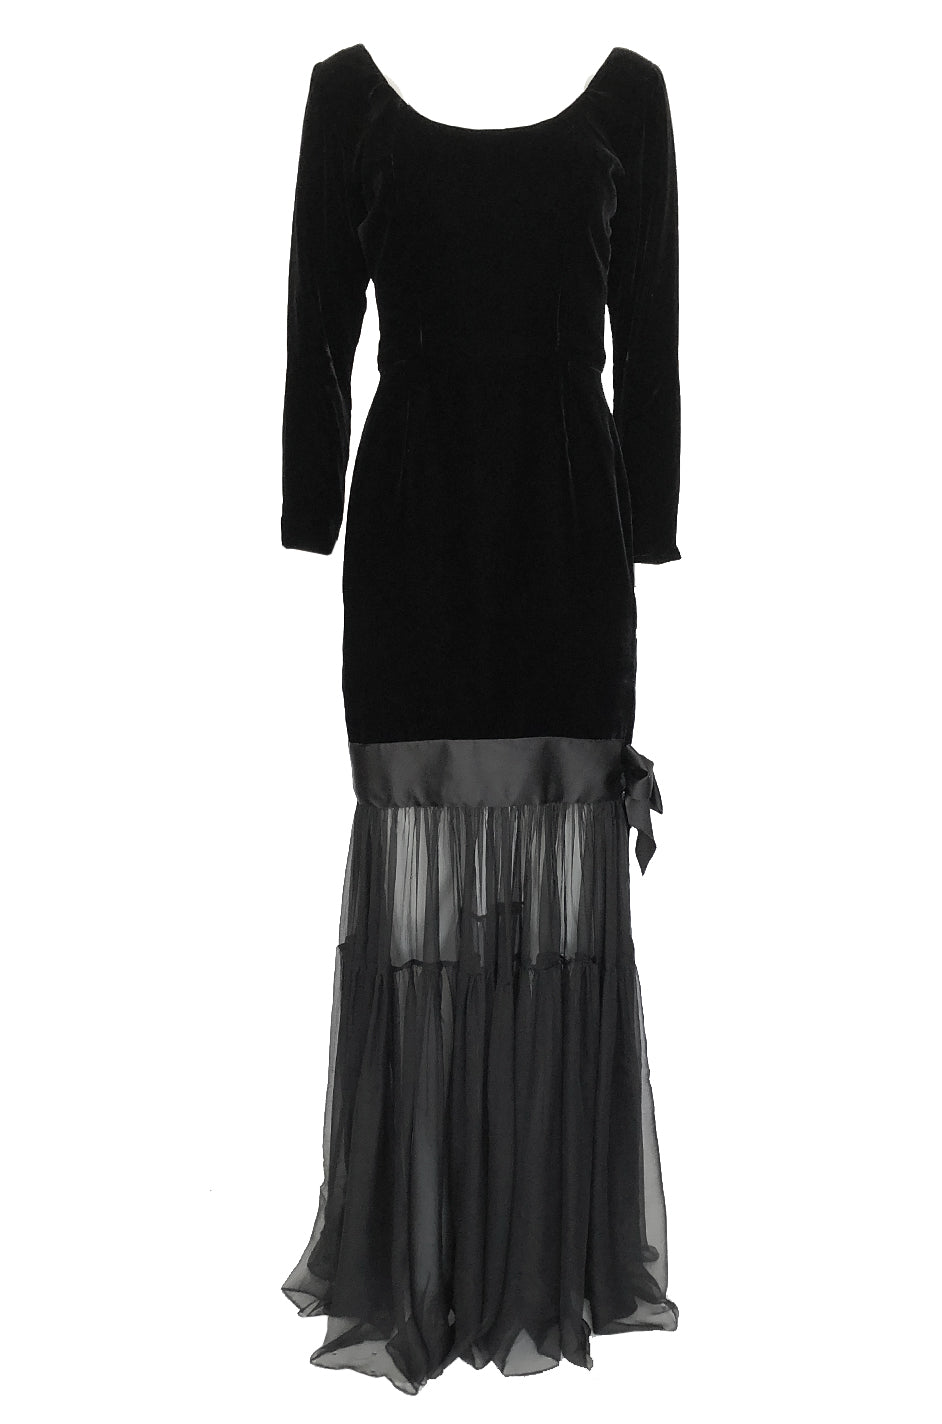 e6bec116f1 Fall 1987 Yves Saint Laurent Fitted Black Velvet   Sheer Silk Chiffon Dress